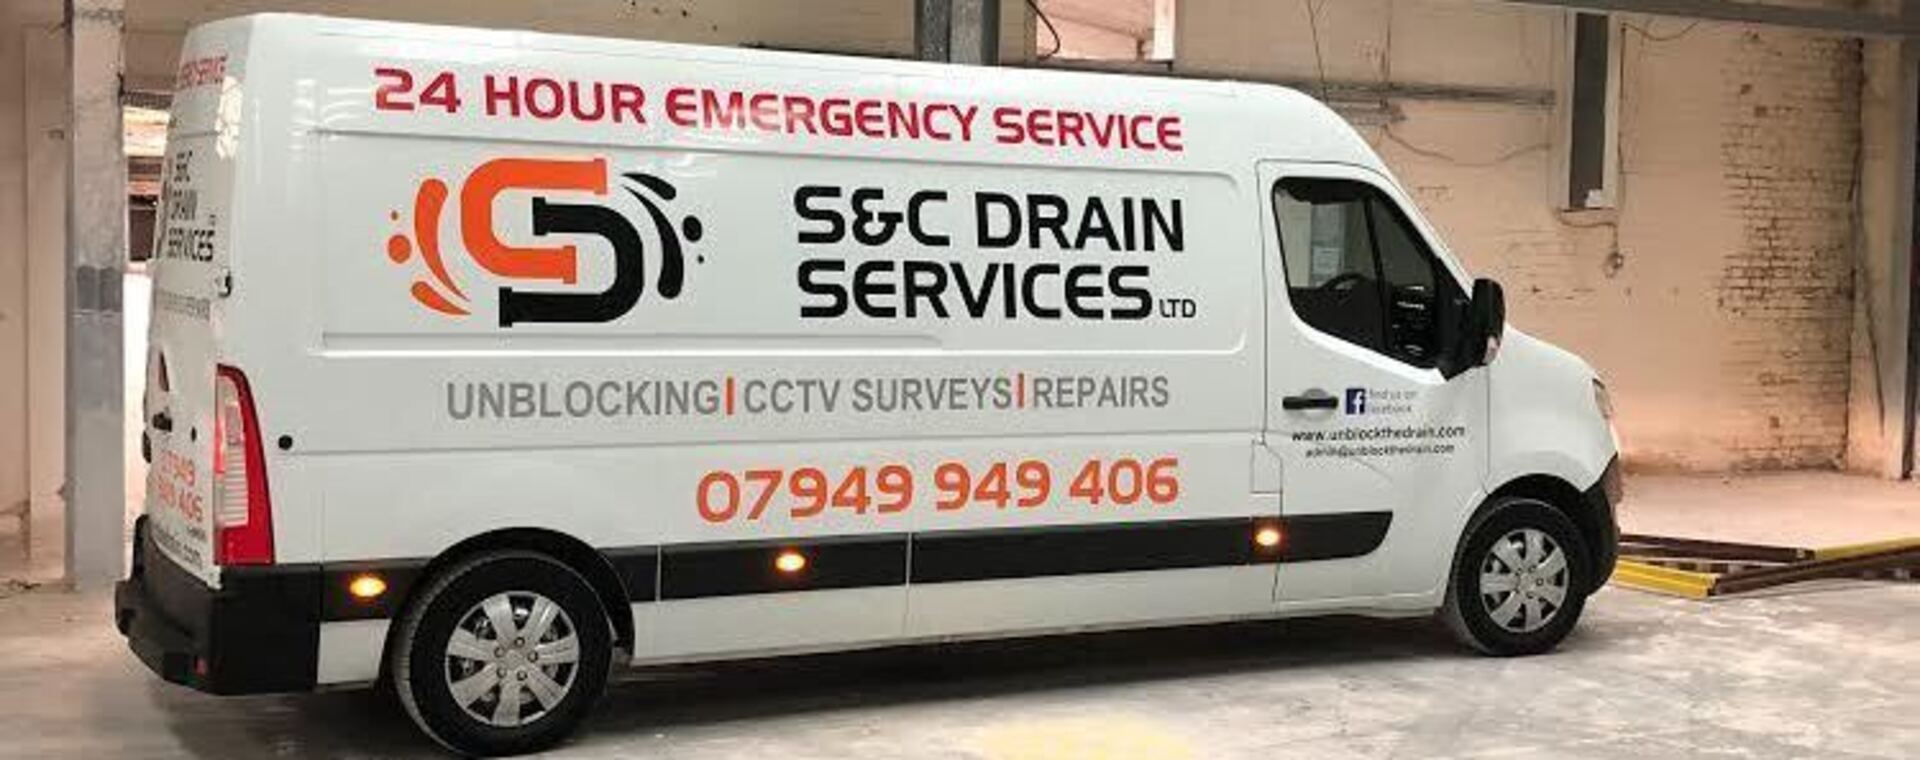 #Happyunblocking #Poostaff  Blocked drains Manchester, blocked drains bolton, unblock, drain repairs, drain lining, blocked drain wigan, blocked drain Leigh, drainage specialist bolton, Blocked toilet manchester, drainage plumer, drain unblocking